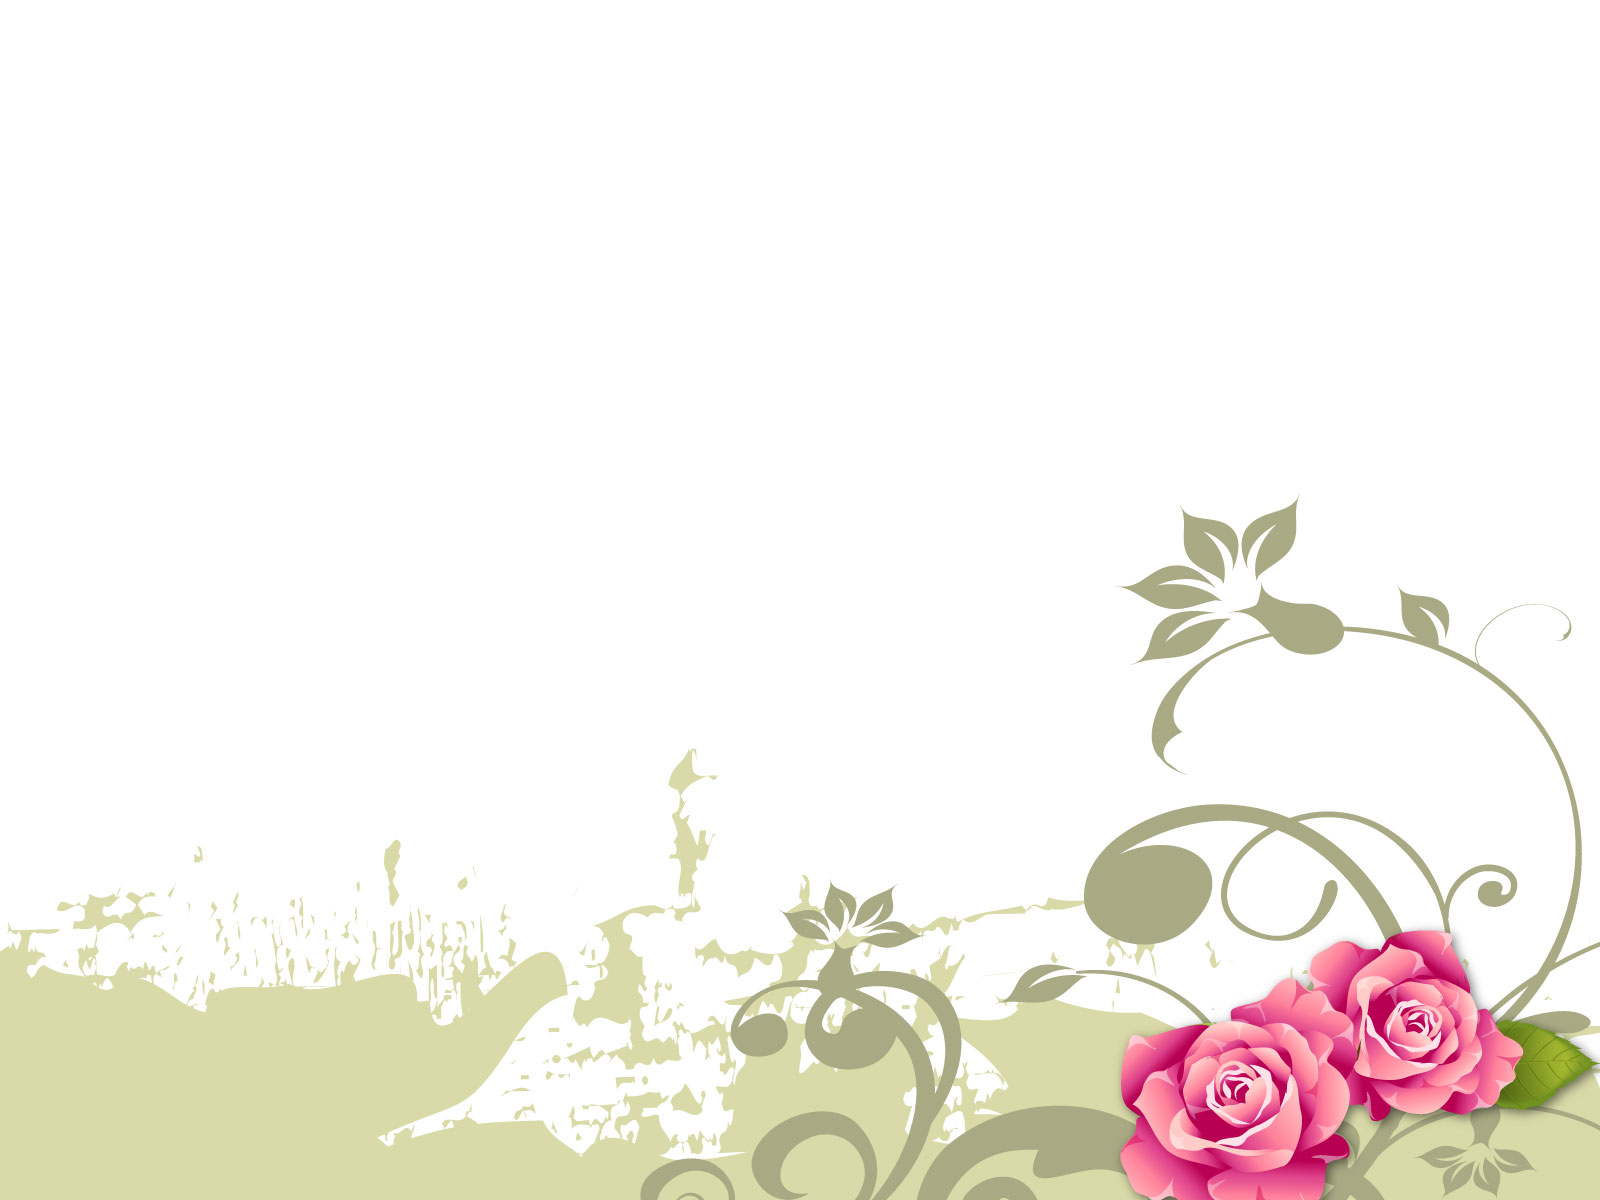 wp contentuploads201406flower background designs free downloadjpg 1600x1200